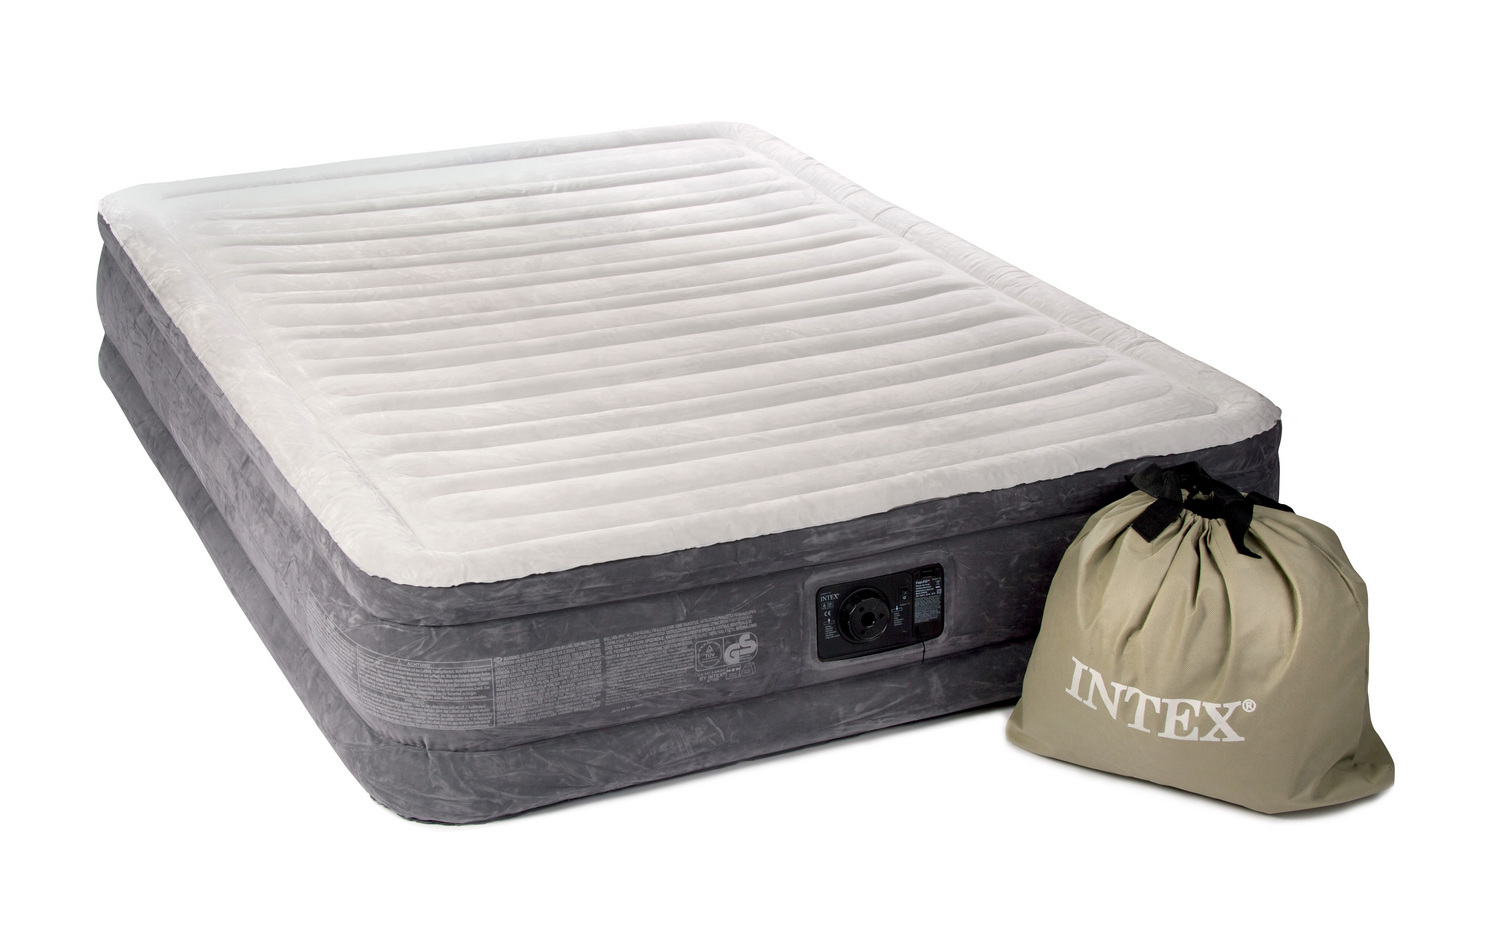 Intex fort Plush Inflatable Air Bed Buy from